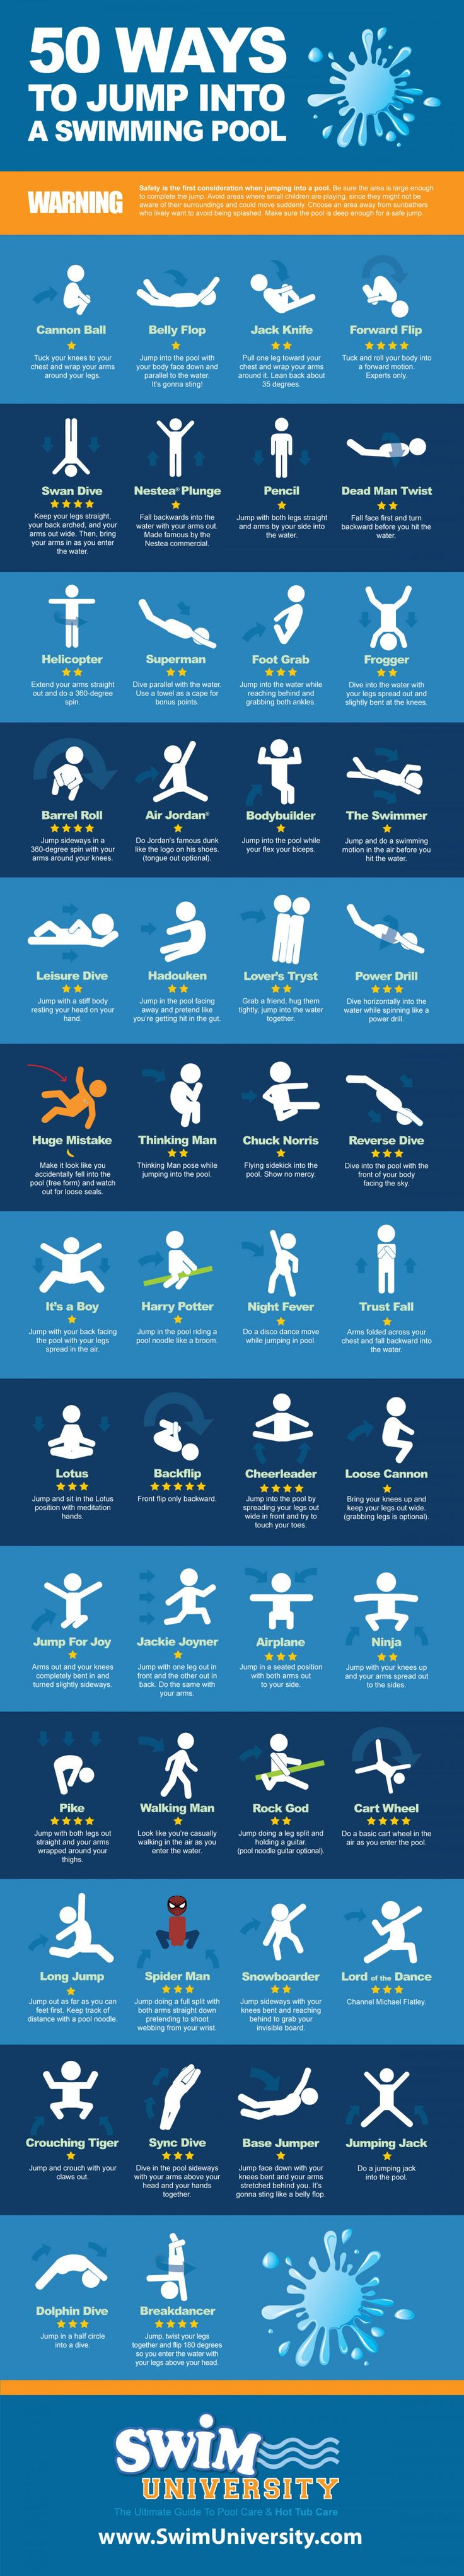 50 Ways to Jump Into a Swimming Pool Infographic